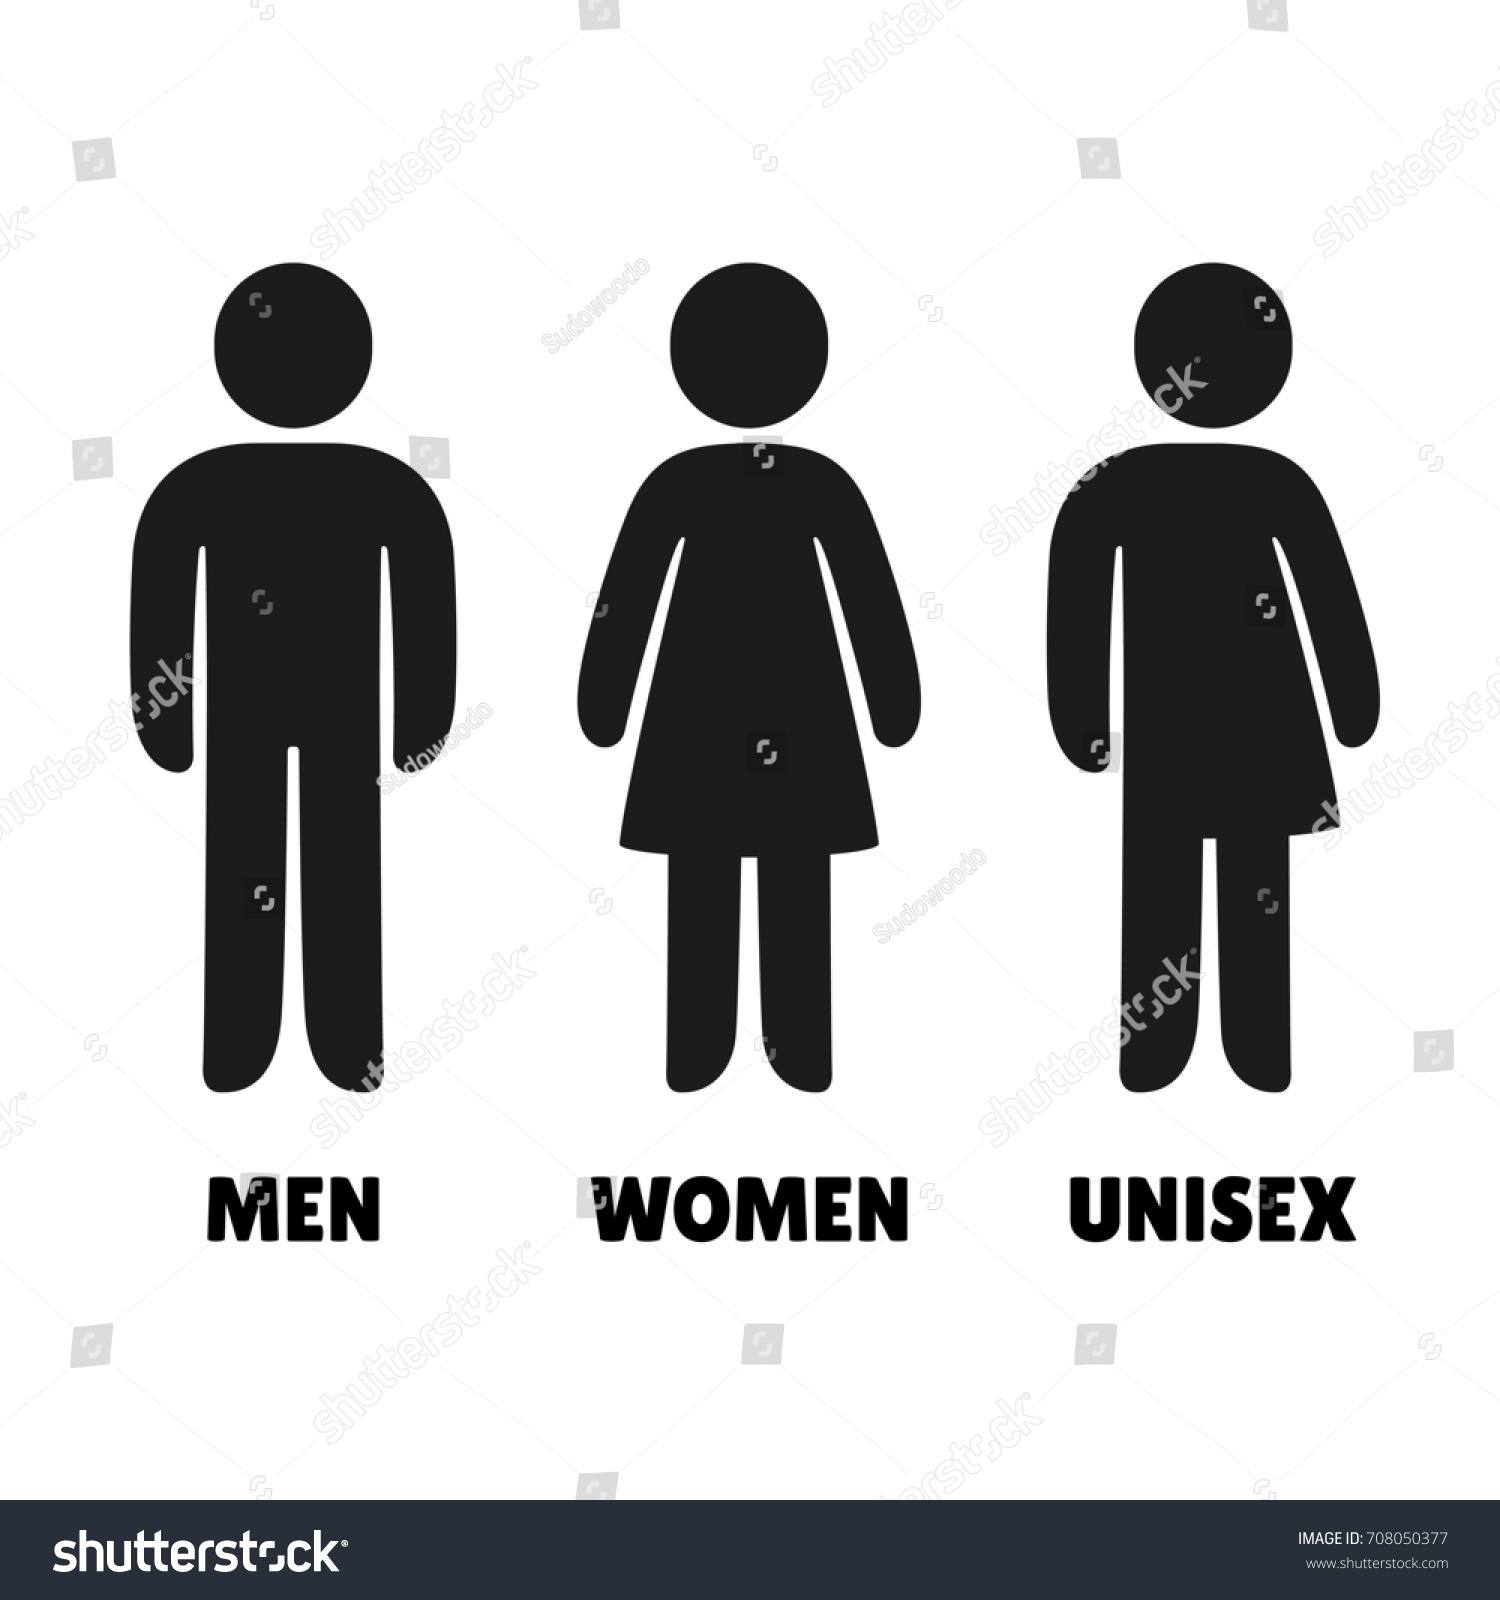 Male Female Bathroom Symbols Impressive Man Woman Uniicons Male Female Stock Illustration 708050377 . Design Decoration